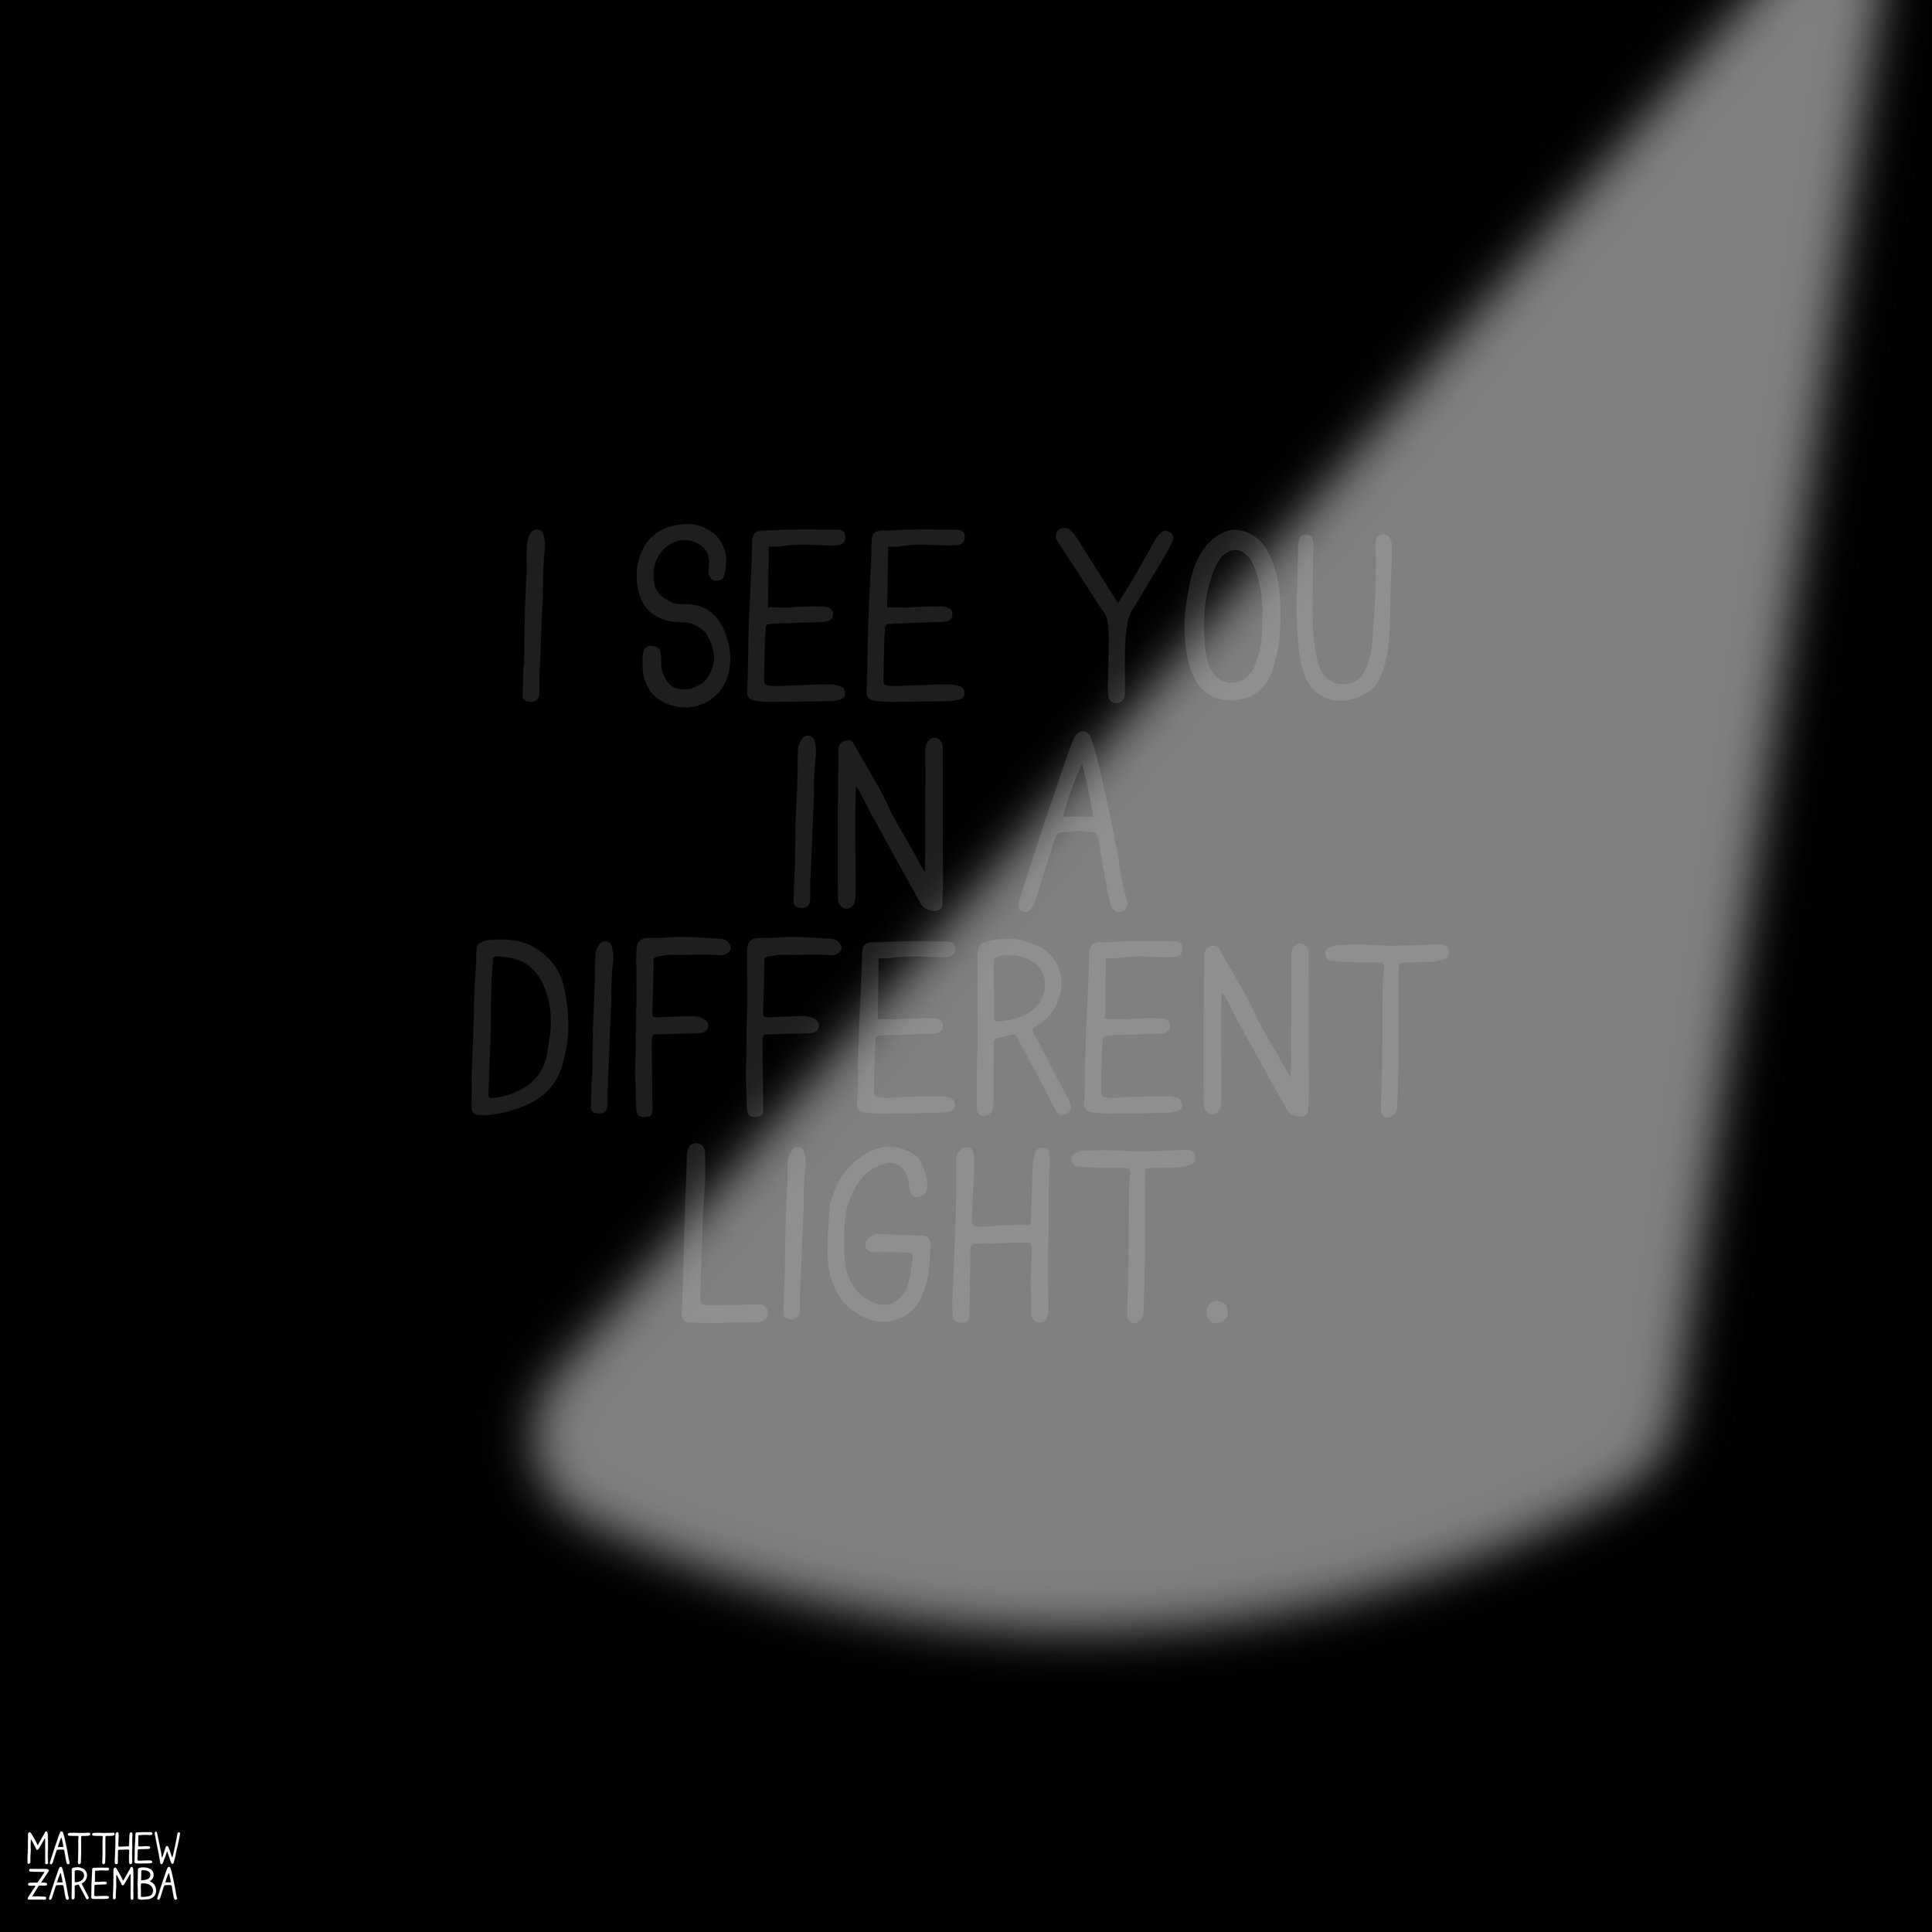 iseeyouinadifferentlight-01.jpg